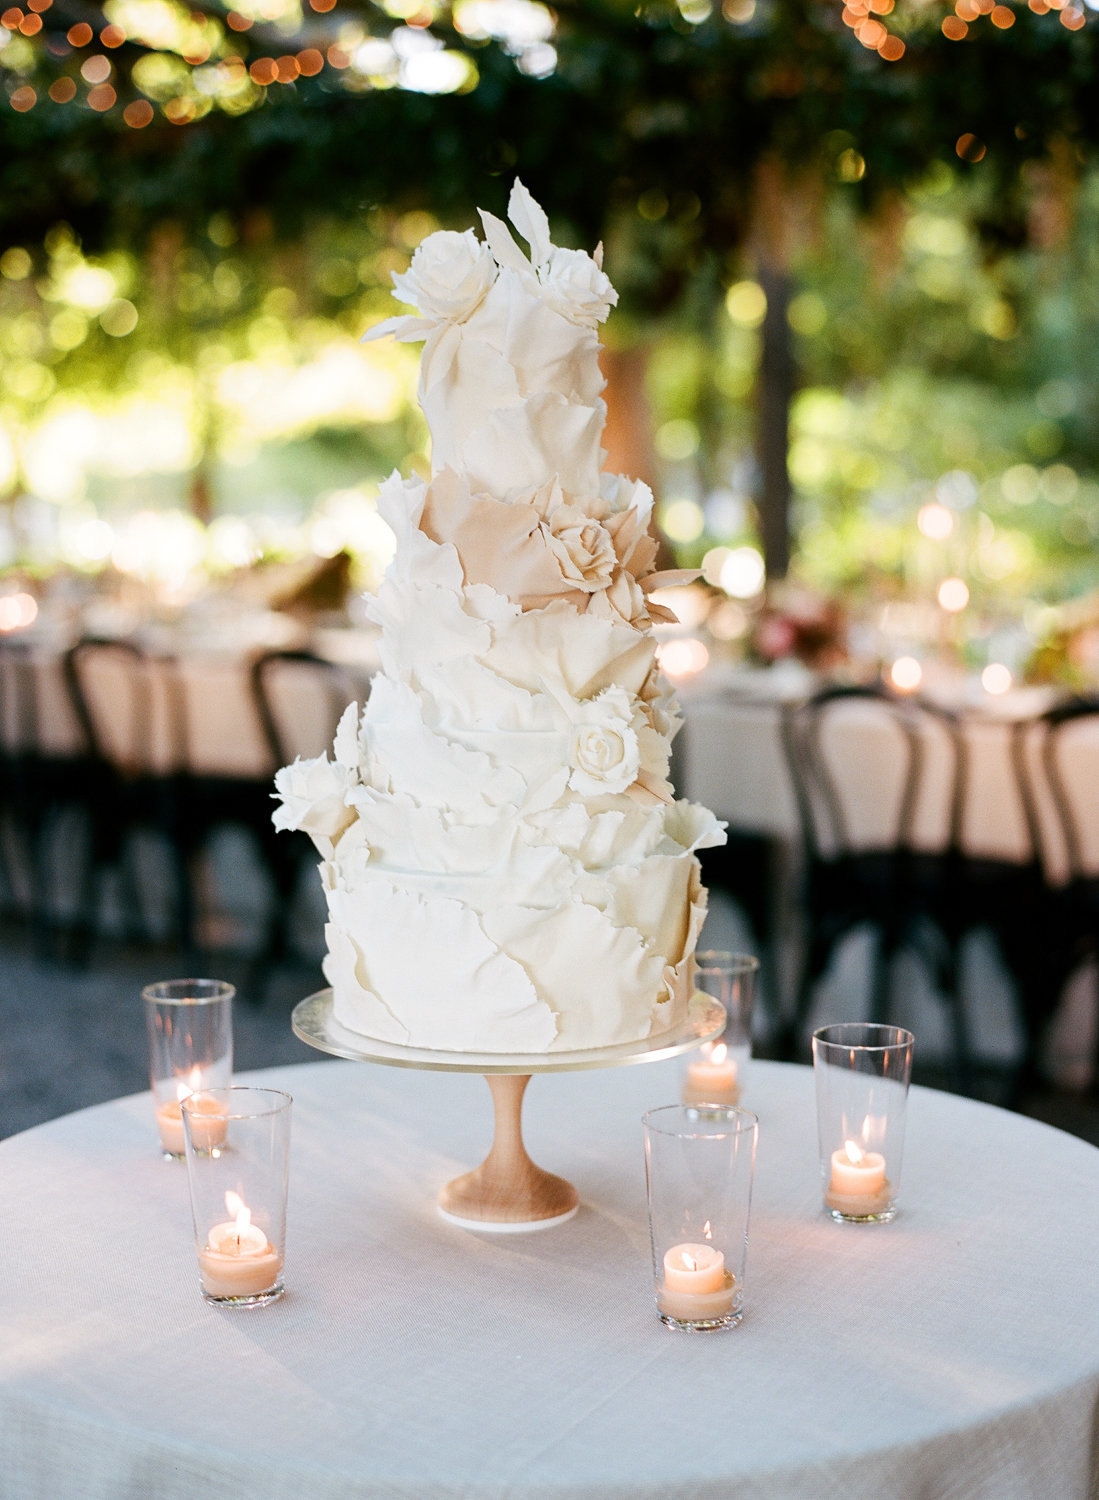 Cake for wedding by Jenny Schneider Events at the Beaulieu Garden in Napa Valley, California. Photo by Lori Paladino Photography.